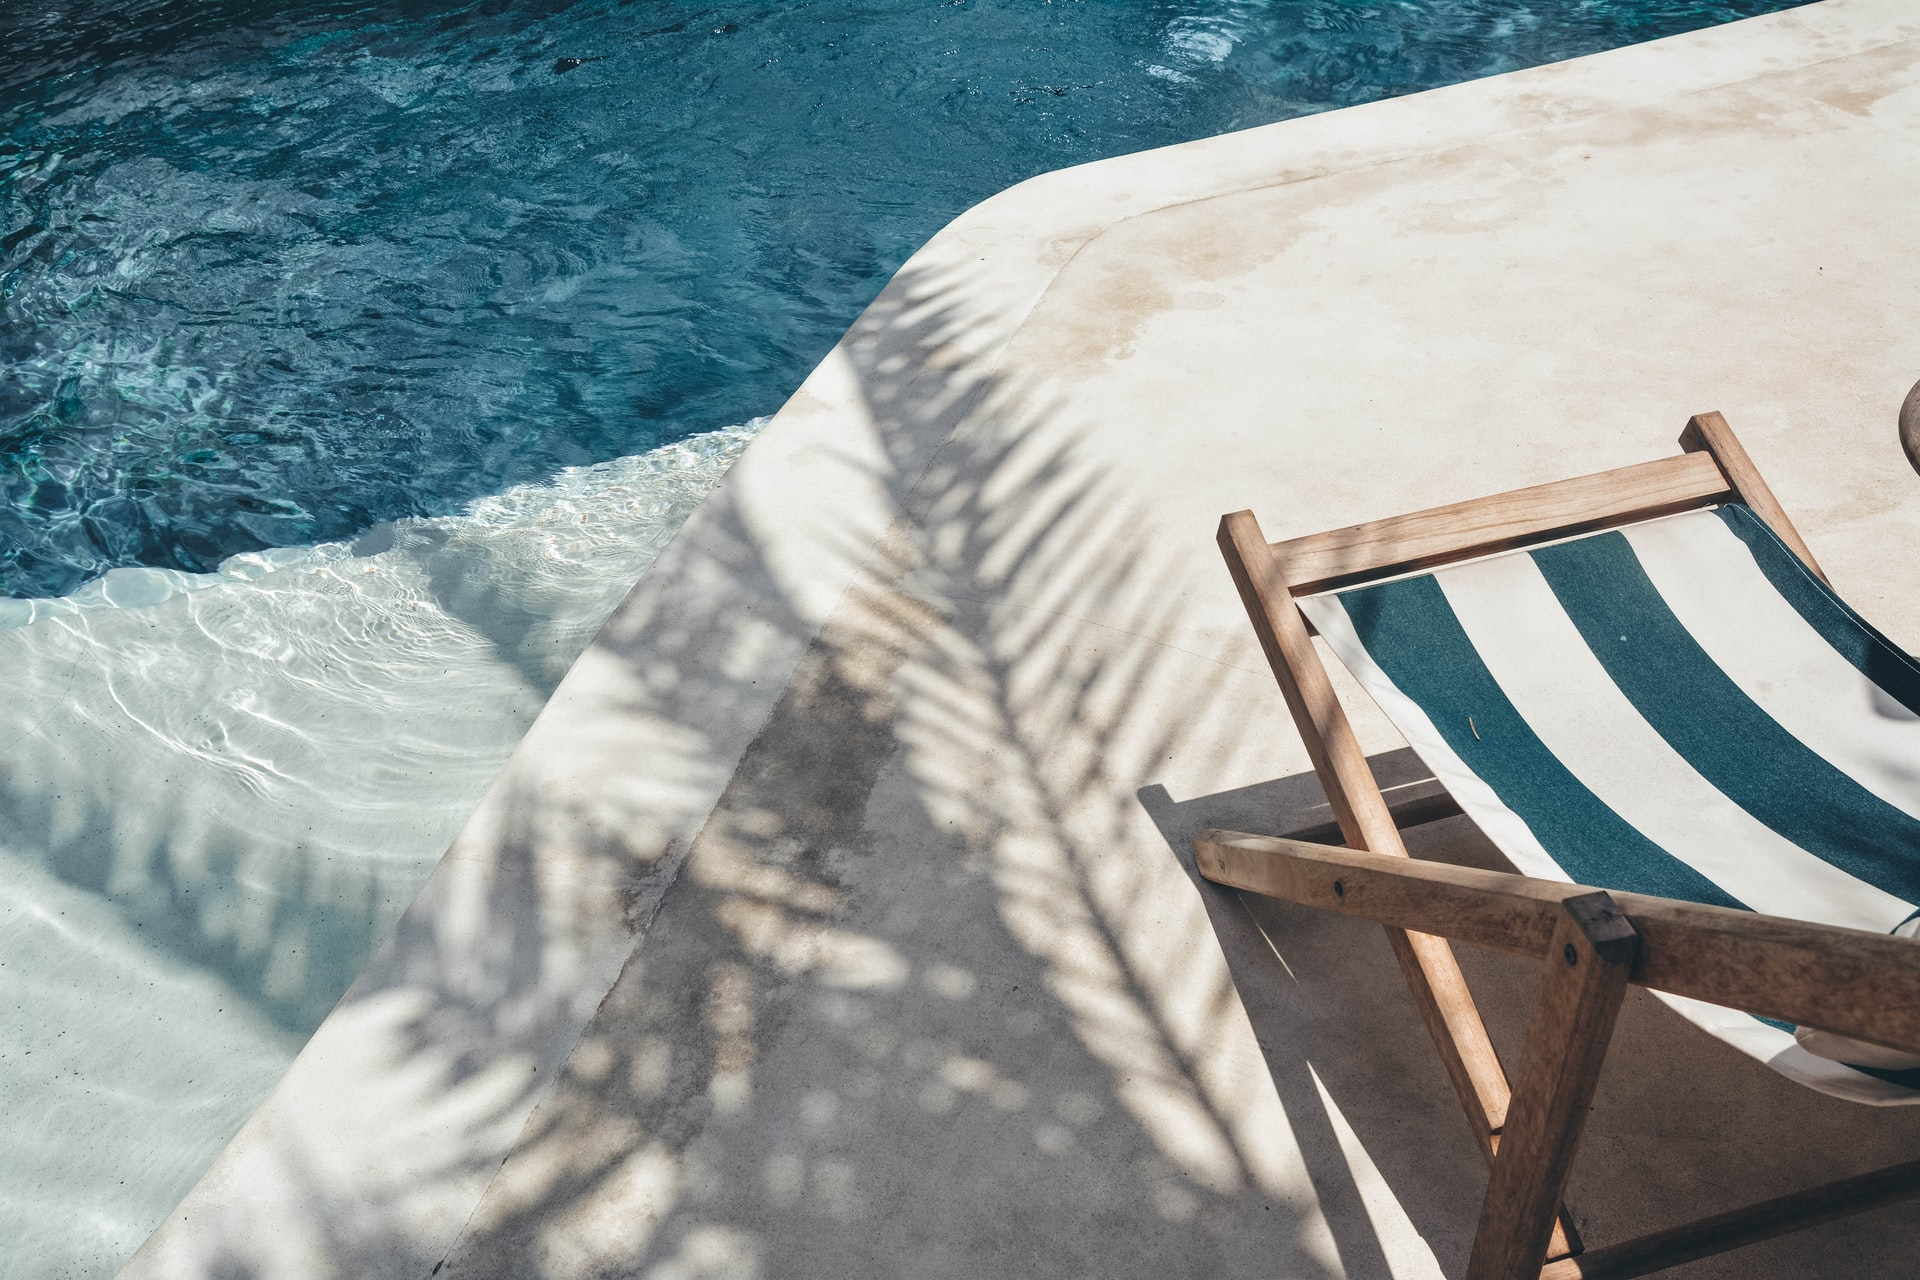 Salt water pool image with a beach chair